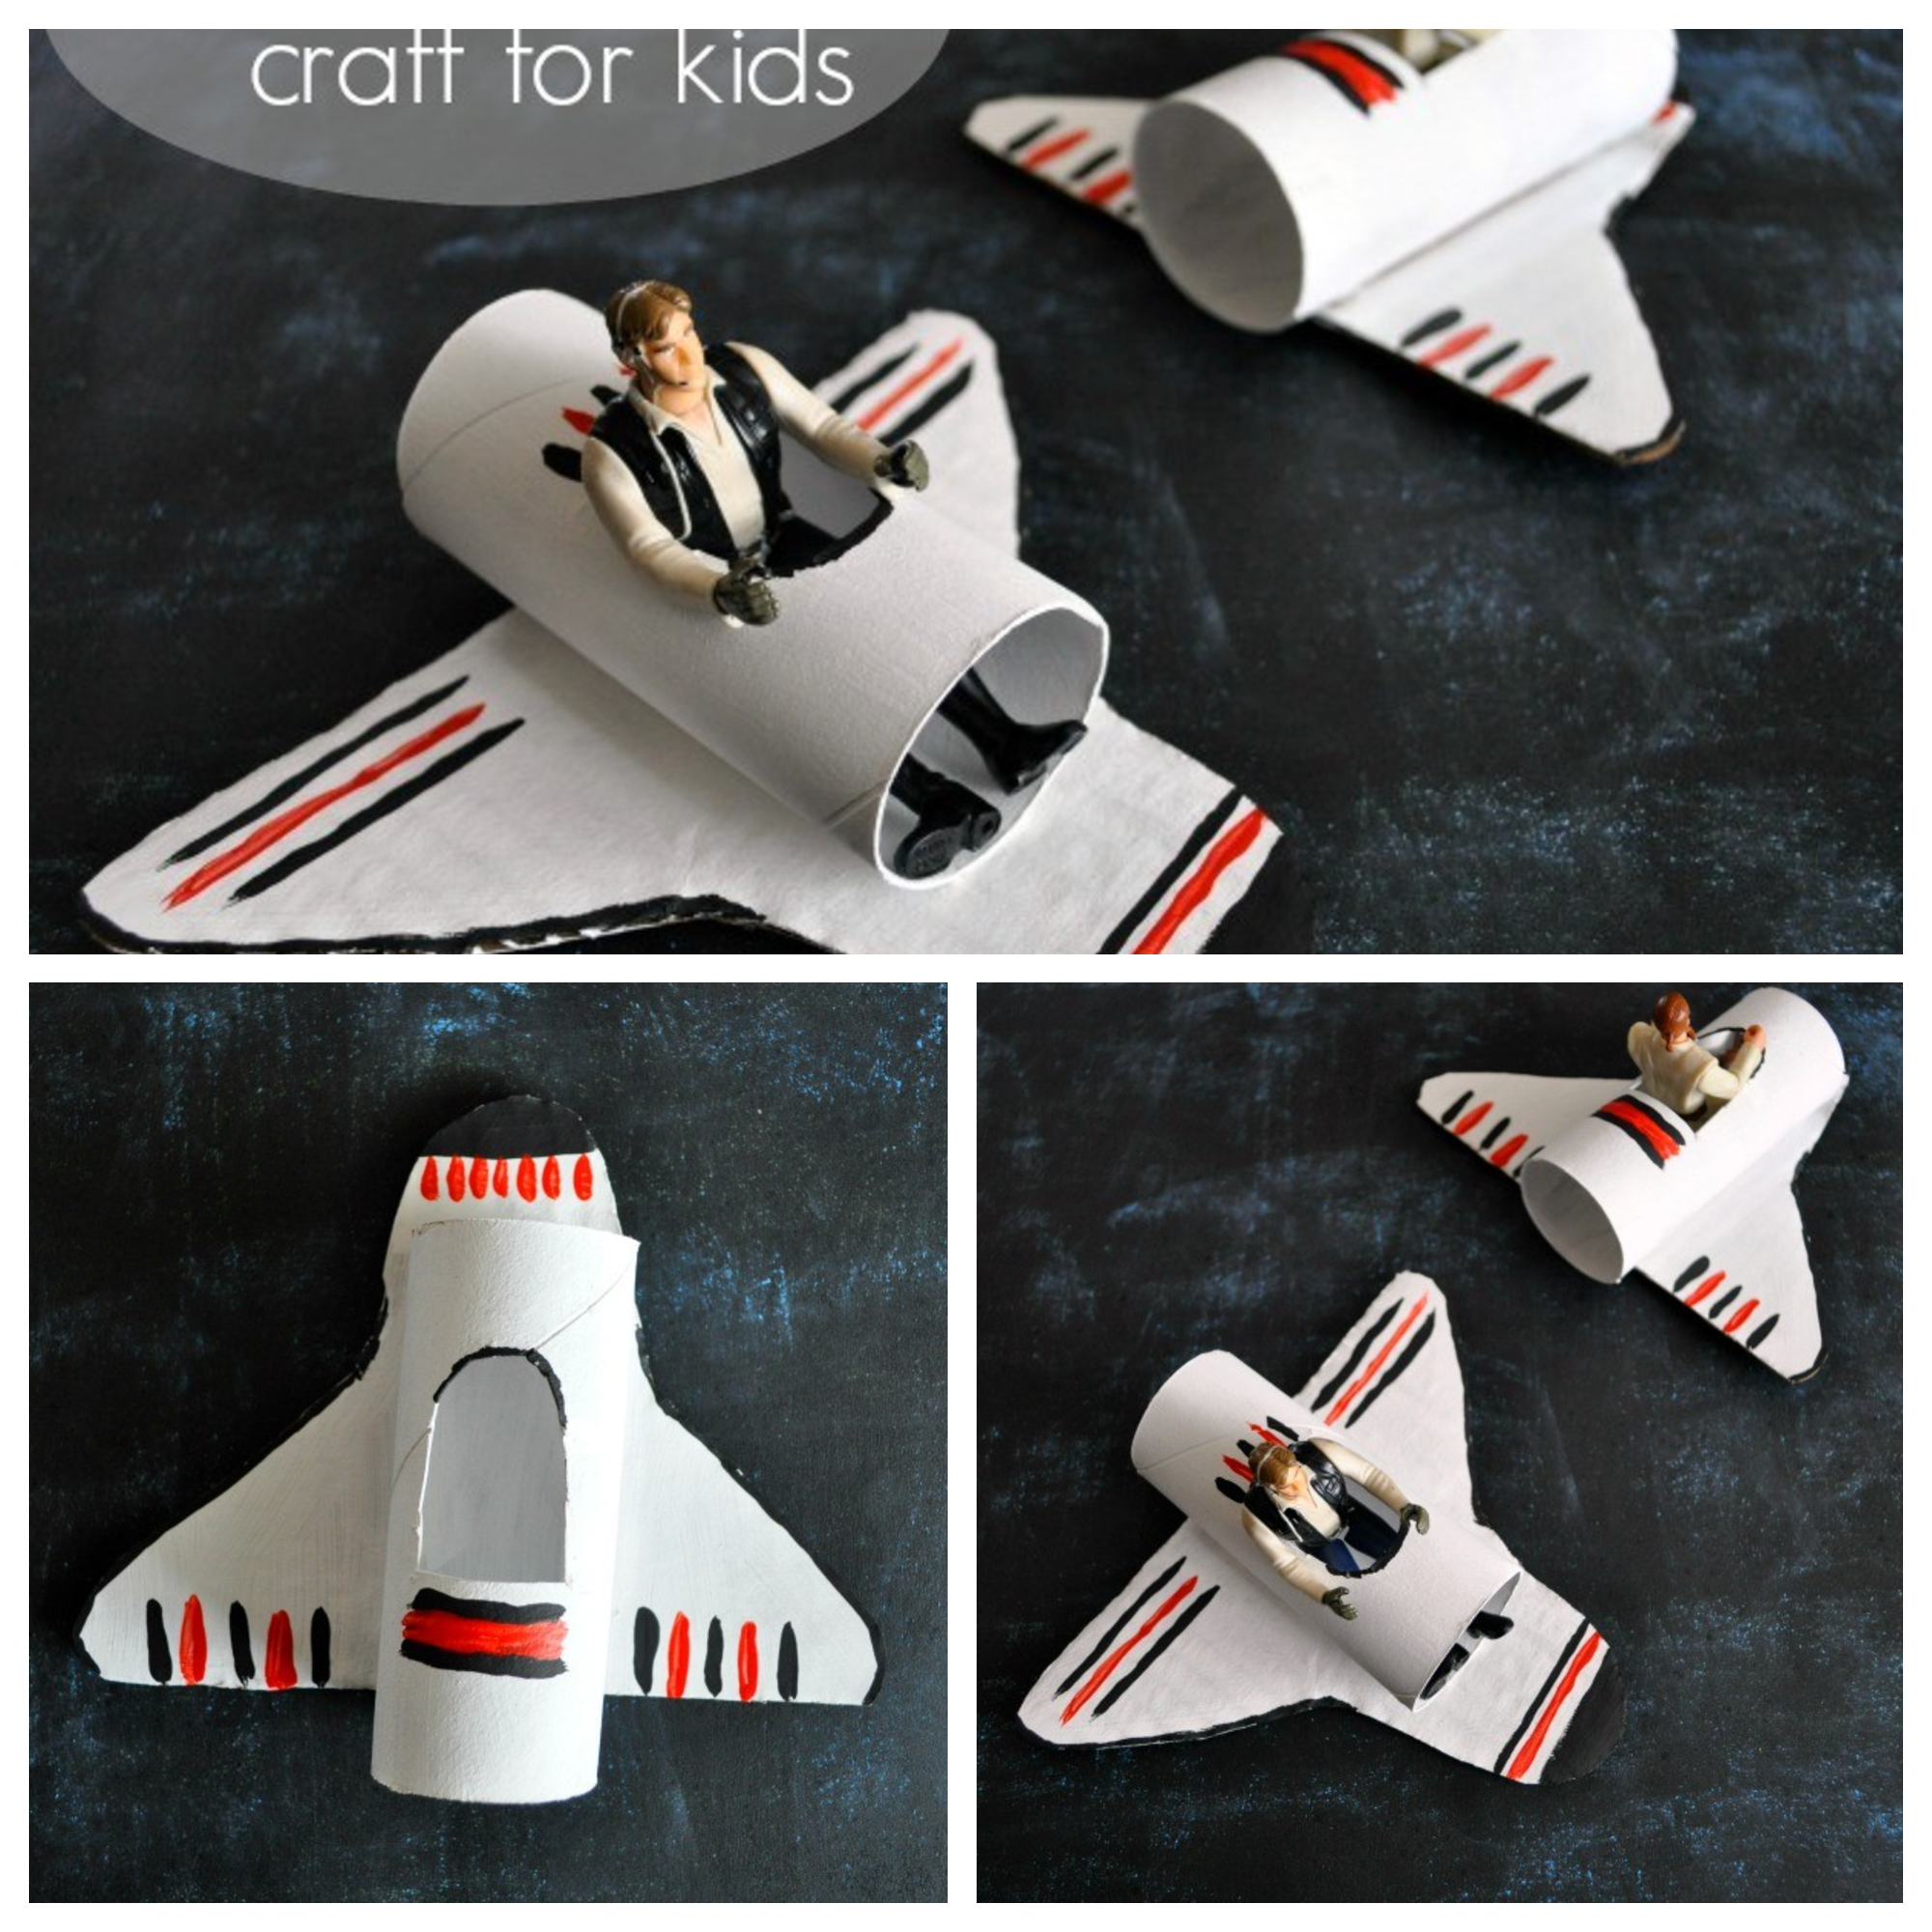 A HAPPY HOMEMADE SPACE SHUTTLE CRAFT Kids Crafts Ideas That You Can Make Easily